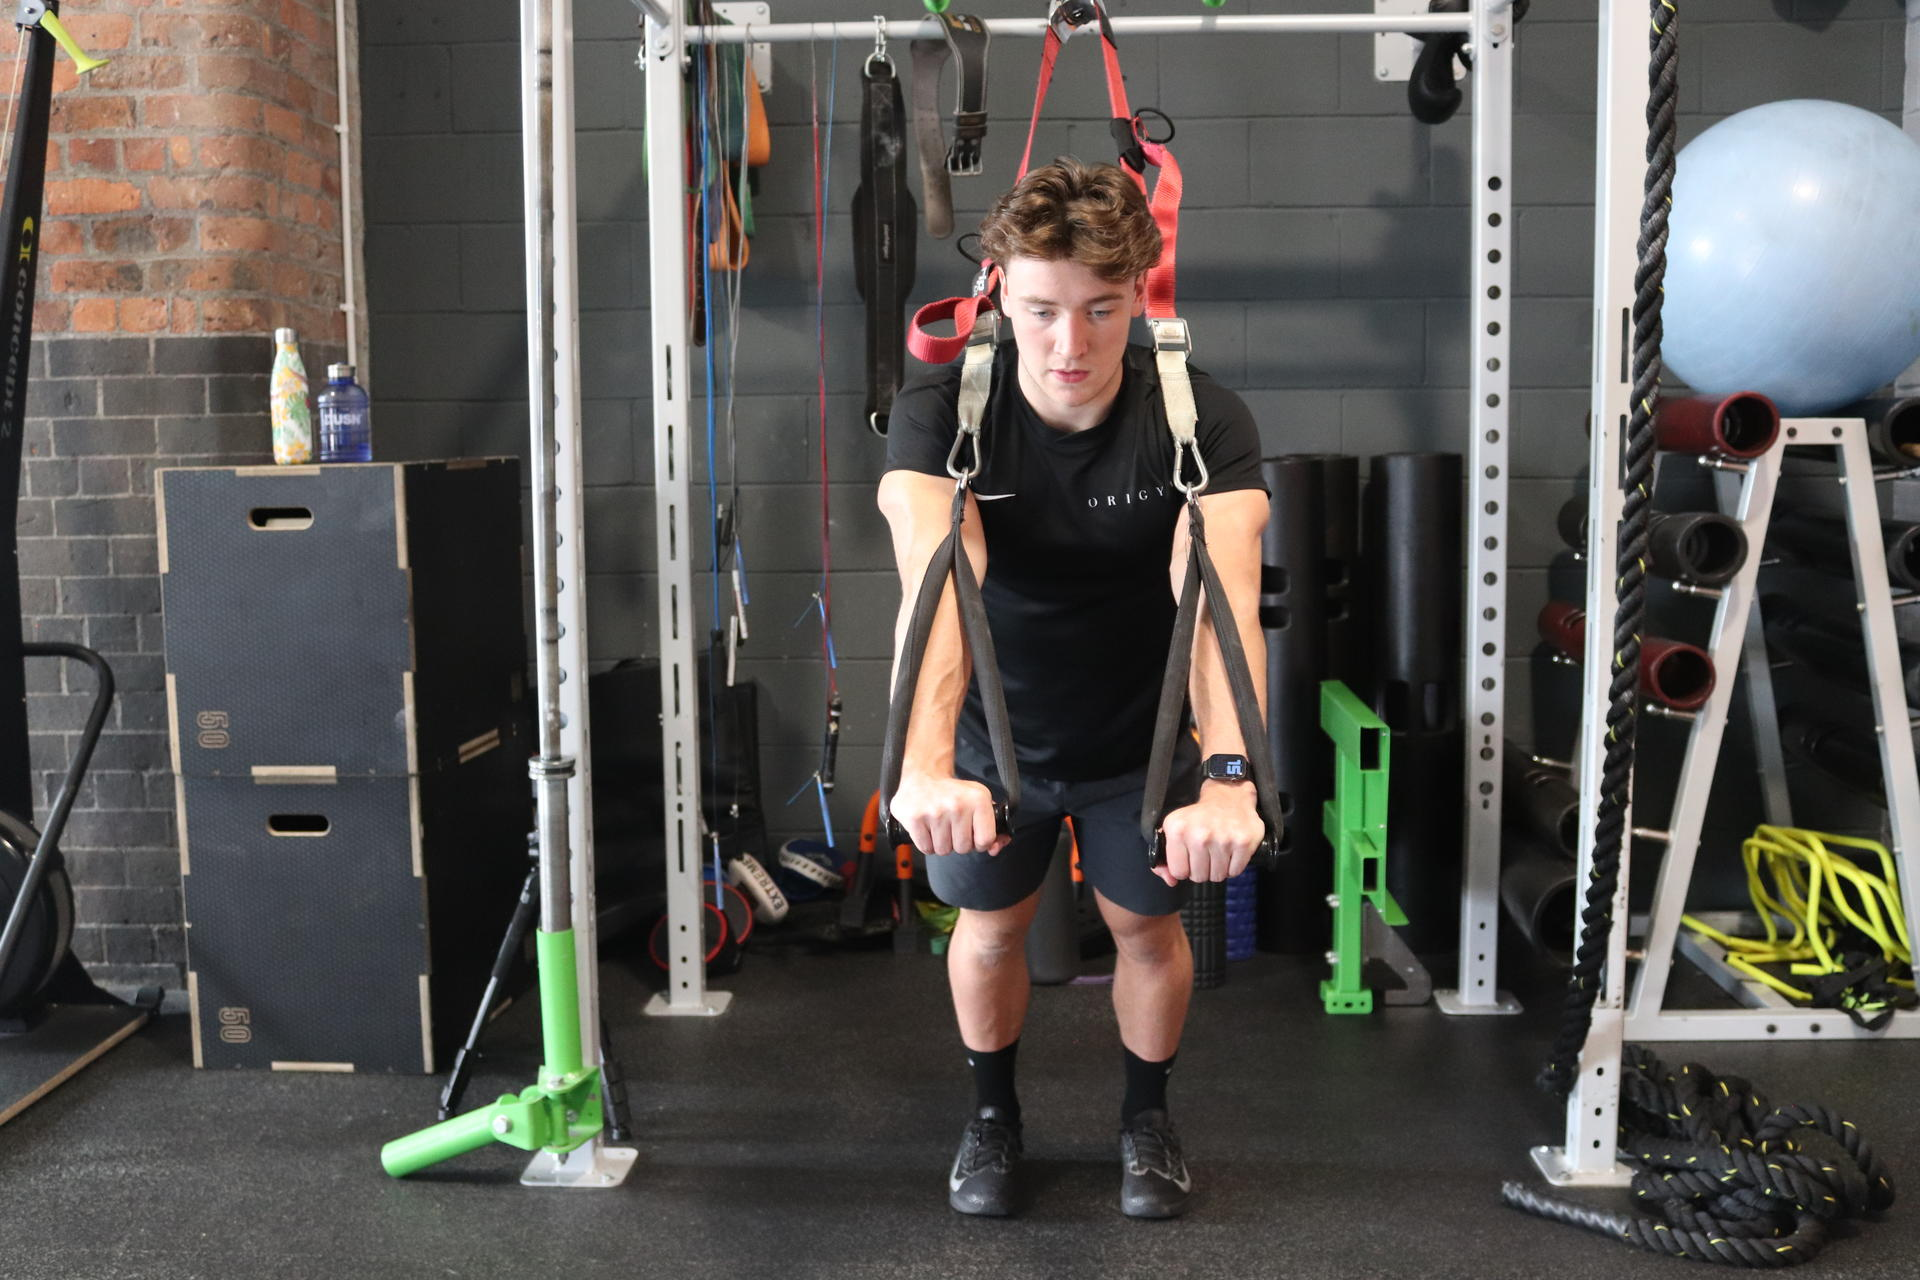 How many trx exercises are there